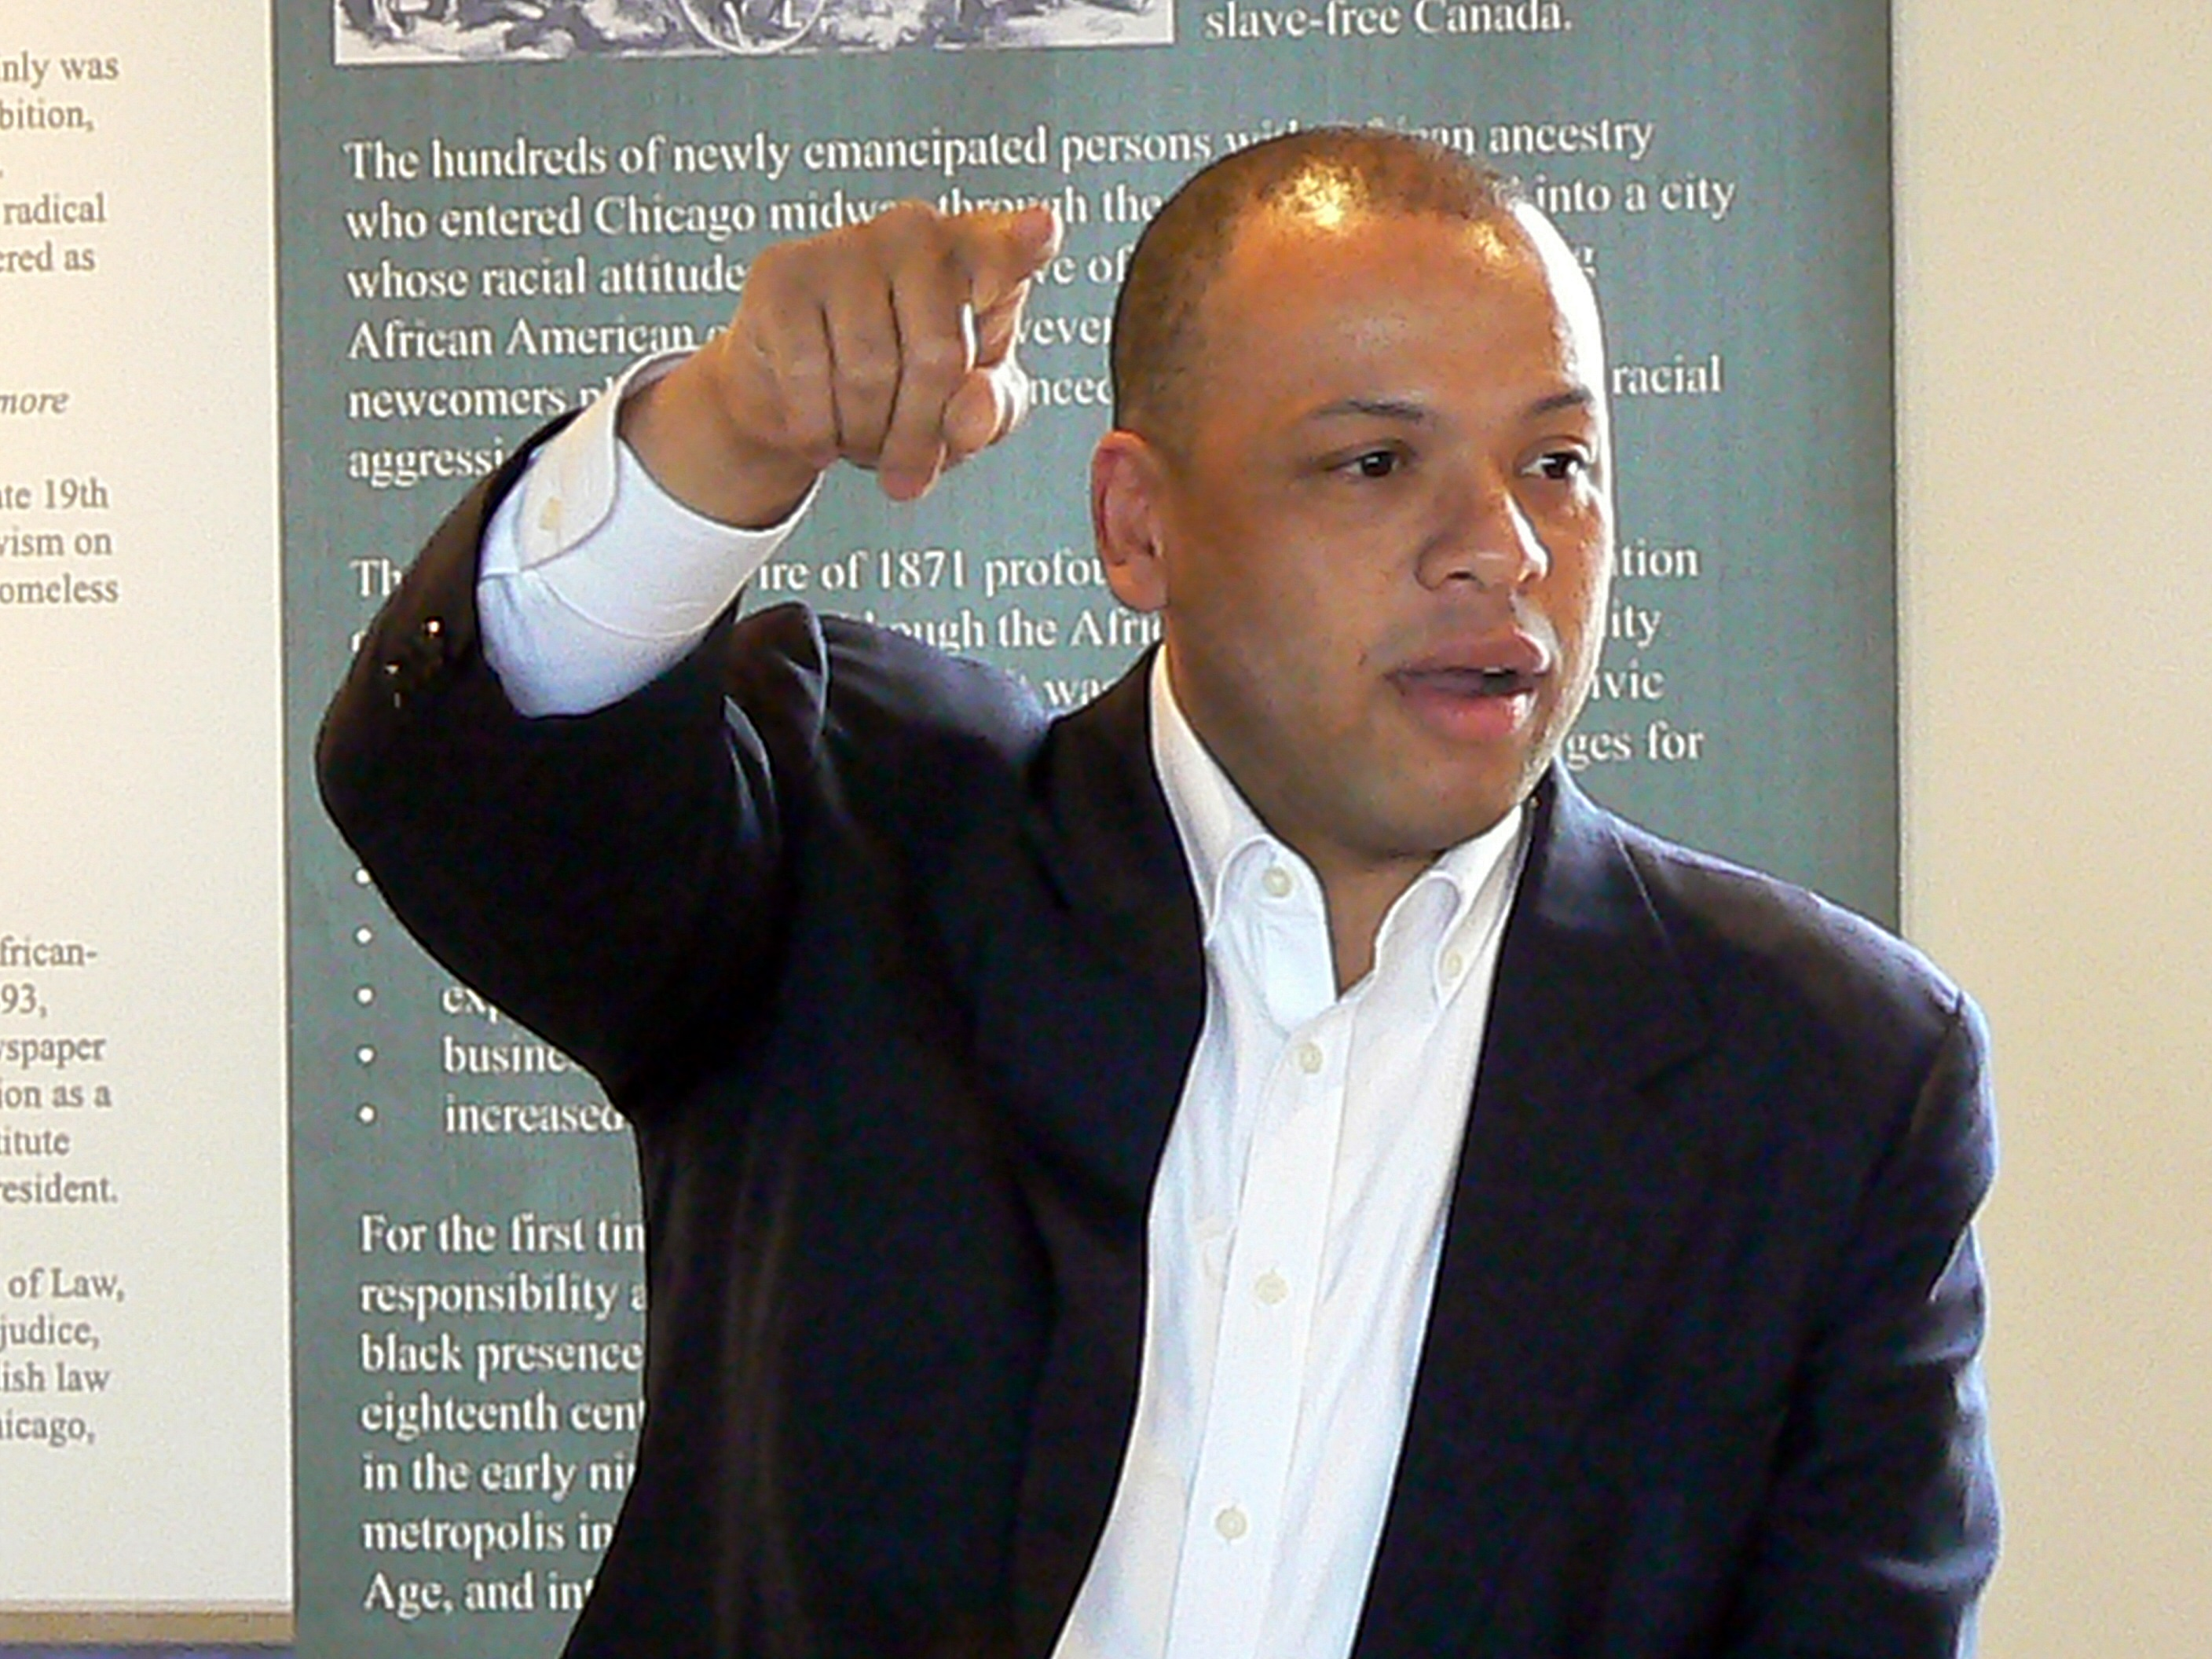 City Treasurer Kurt Summers